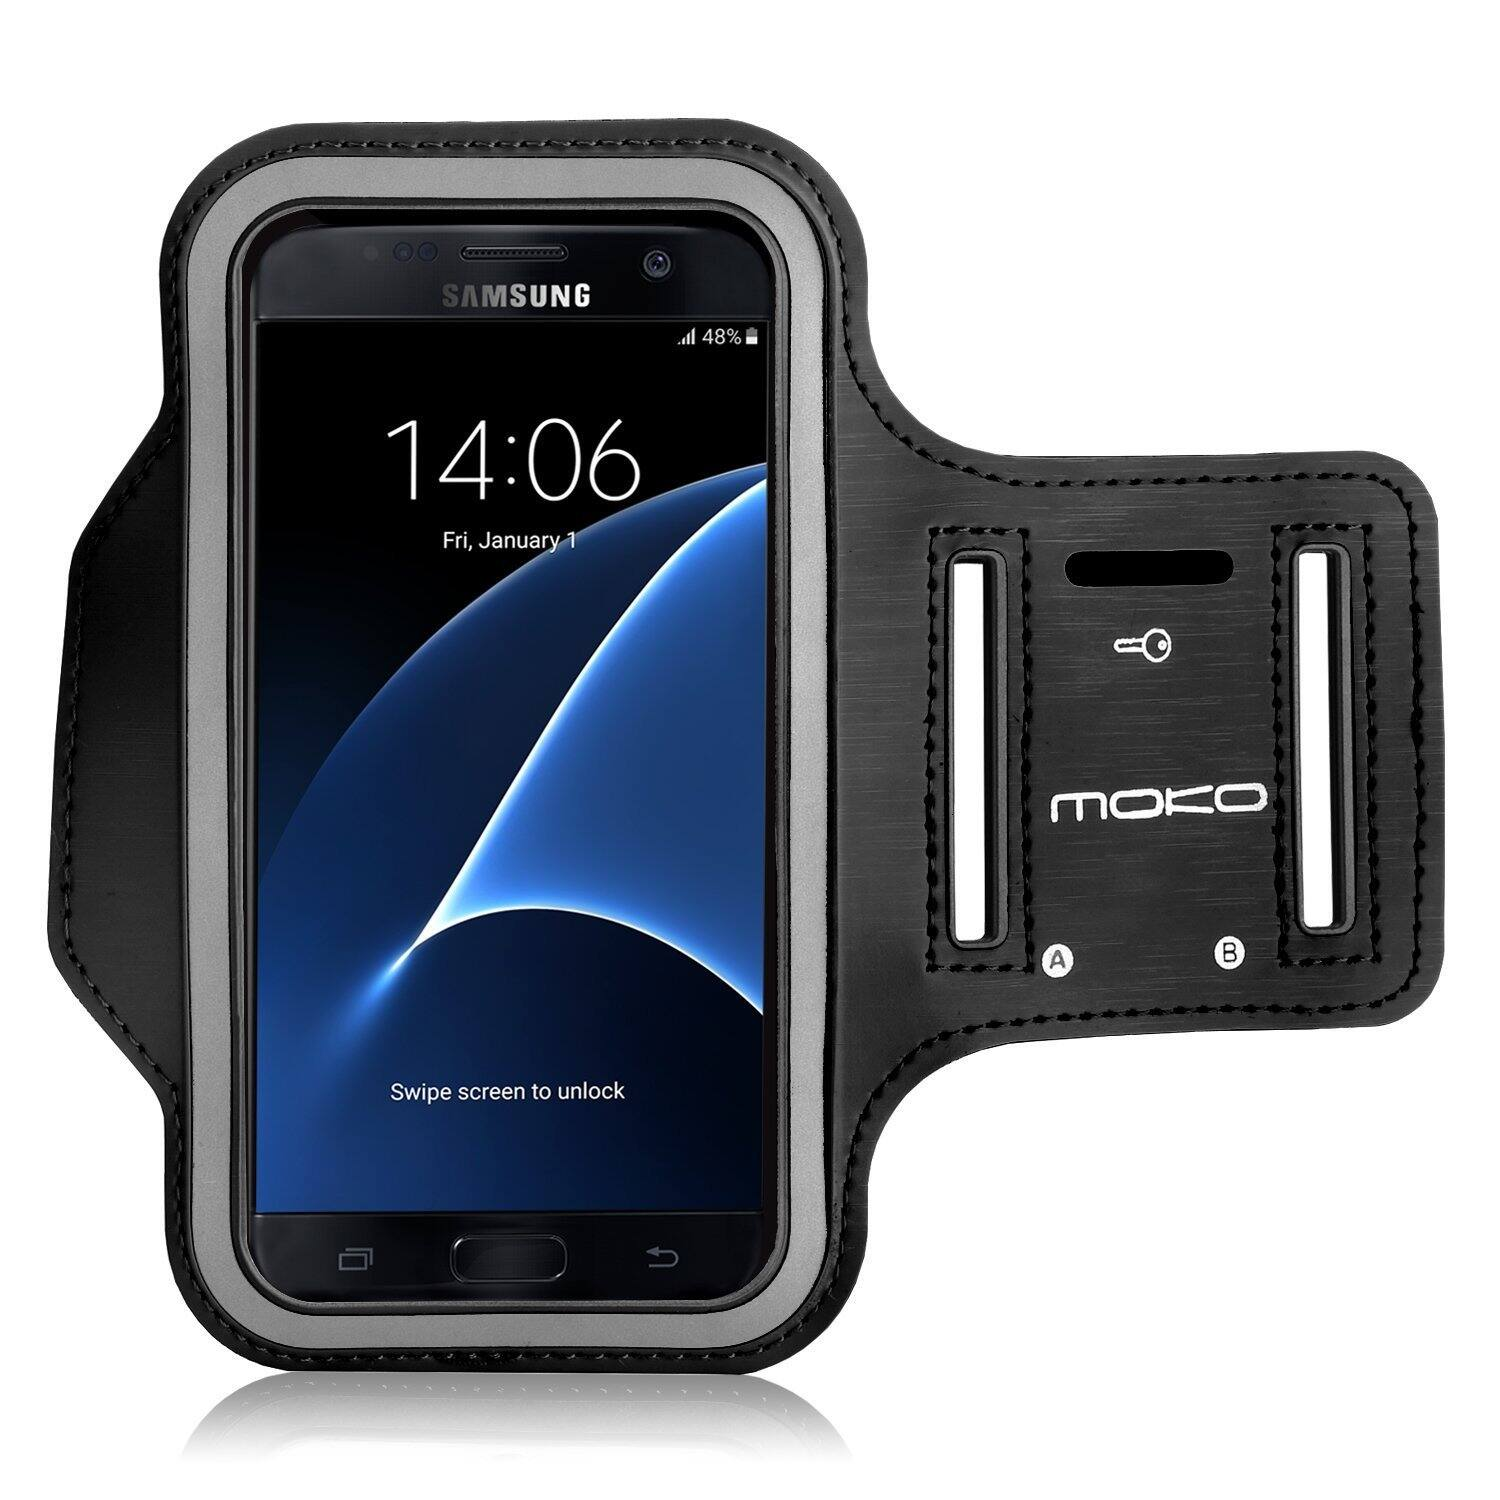 "MoKo Premium Sports Water Resistant & Sweat-Proof Exercise Armband for Cell Phone Up To 5.2"" (Black) $0.99 + Free Shipping w/ Prime Amazon.com"